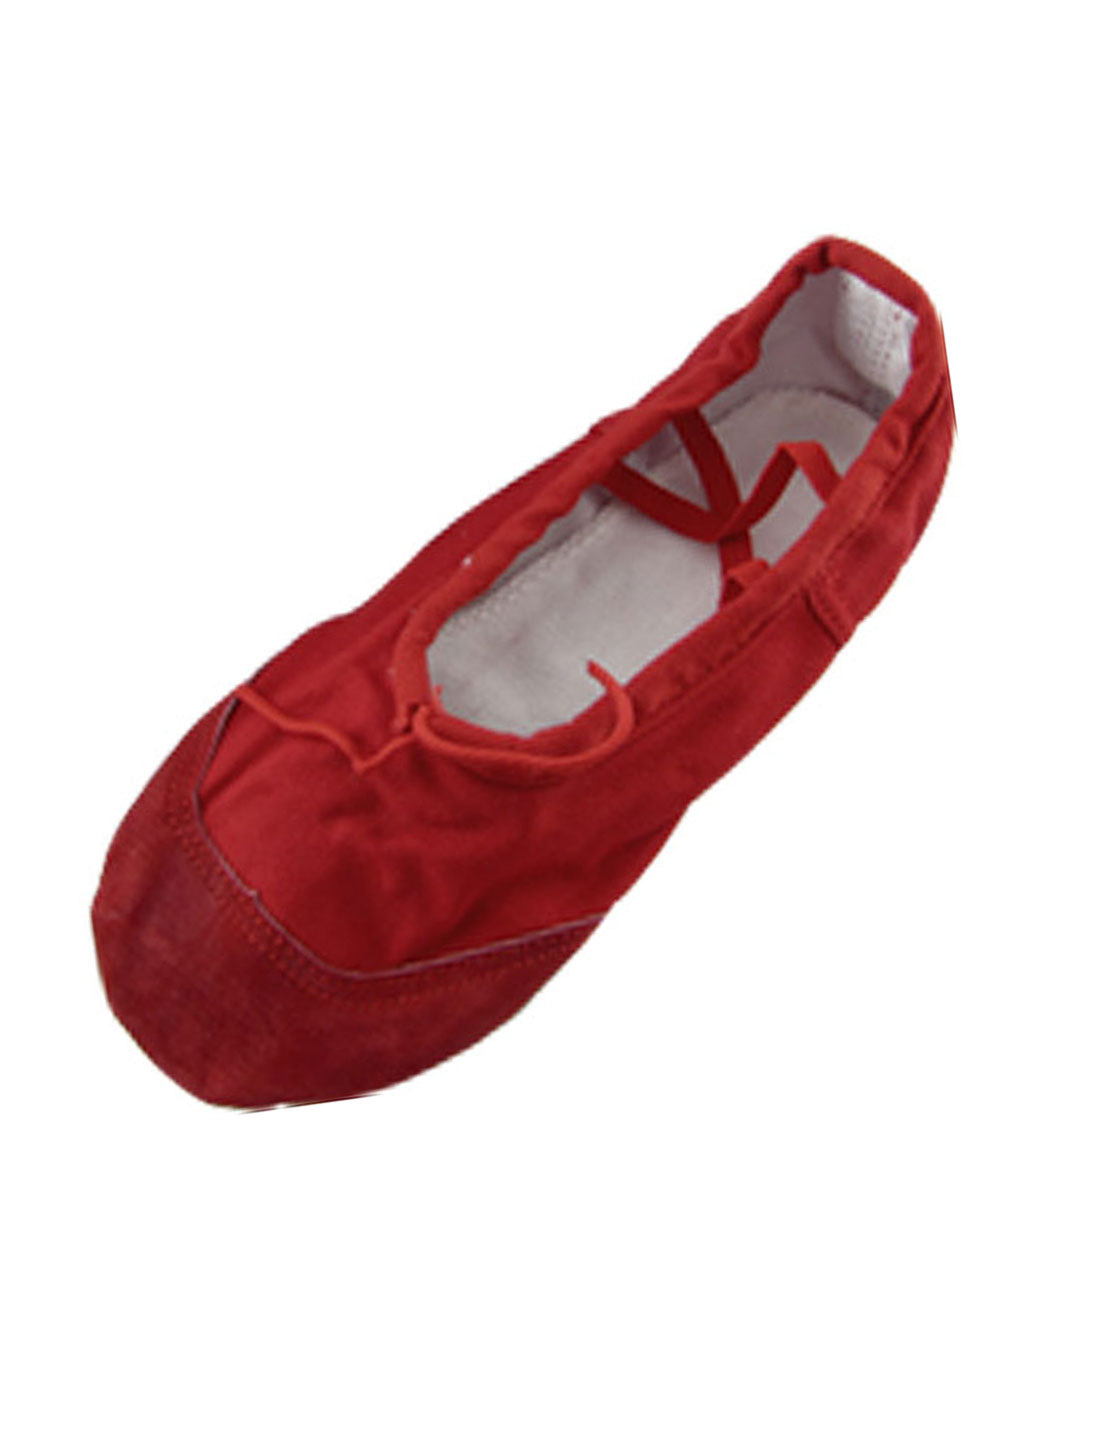 Girls-Red-Soft-Canvas-Elastic-Band-Ballet-Shoes-US-Sz-1